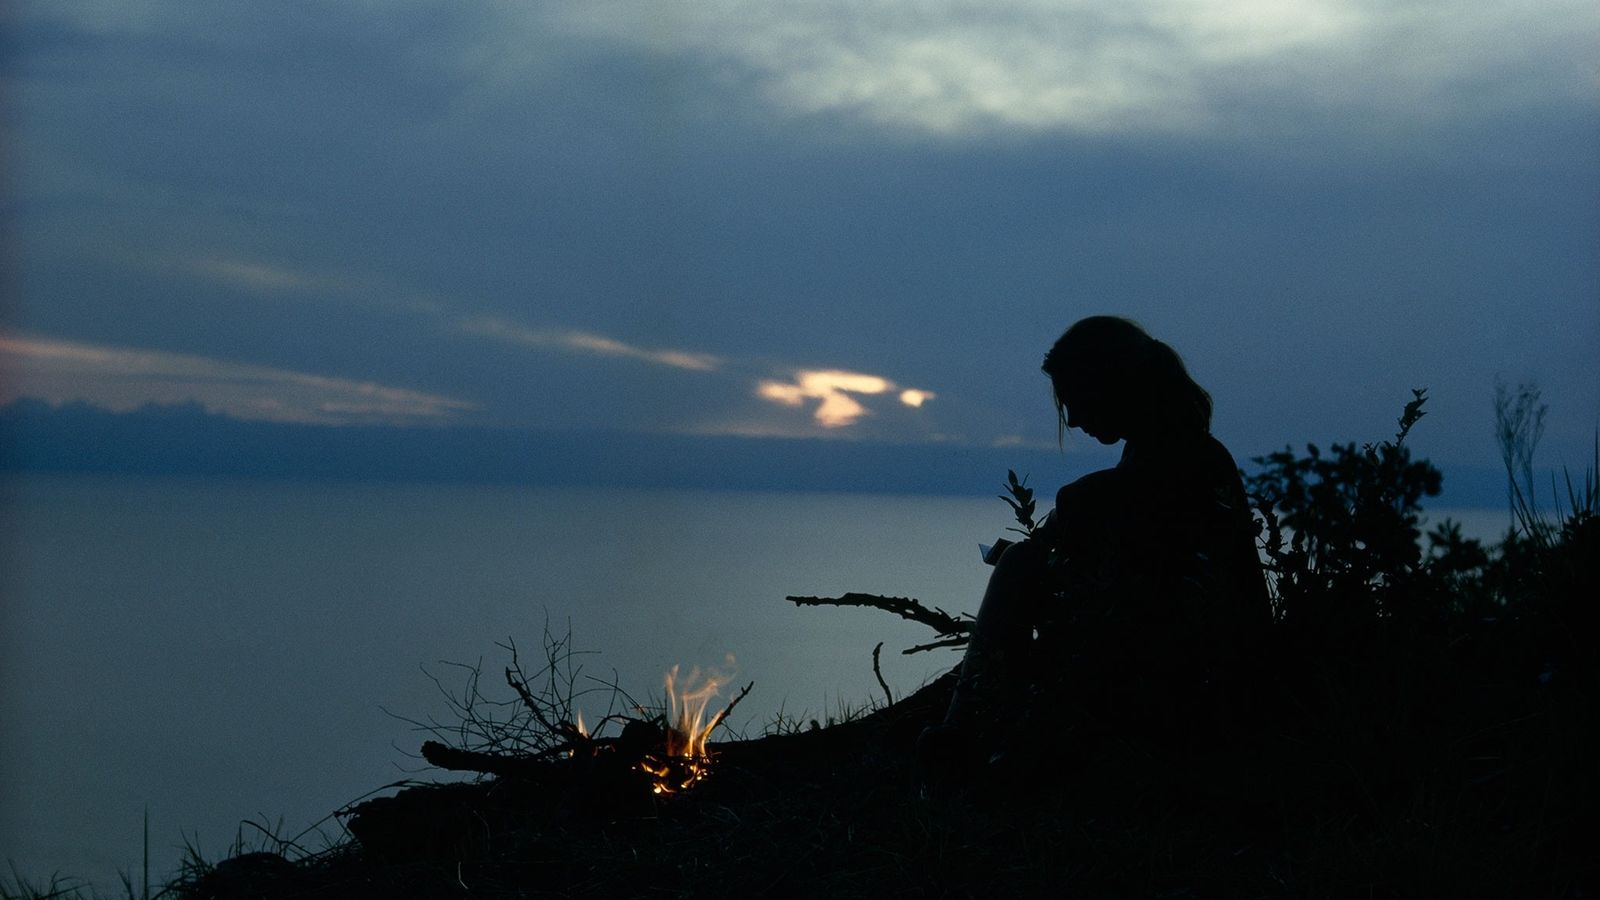 The sun's fading glow on Lake Tanganyika silhouettes the author, who is preparing for a lonely, ...